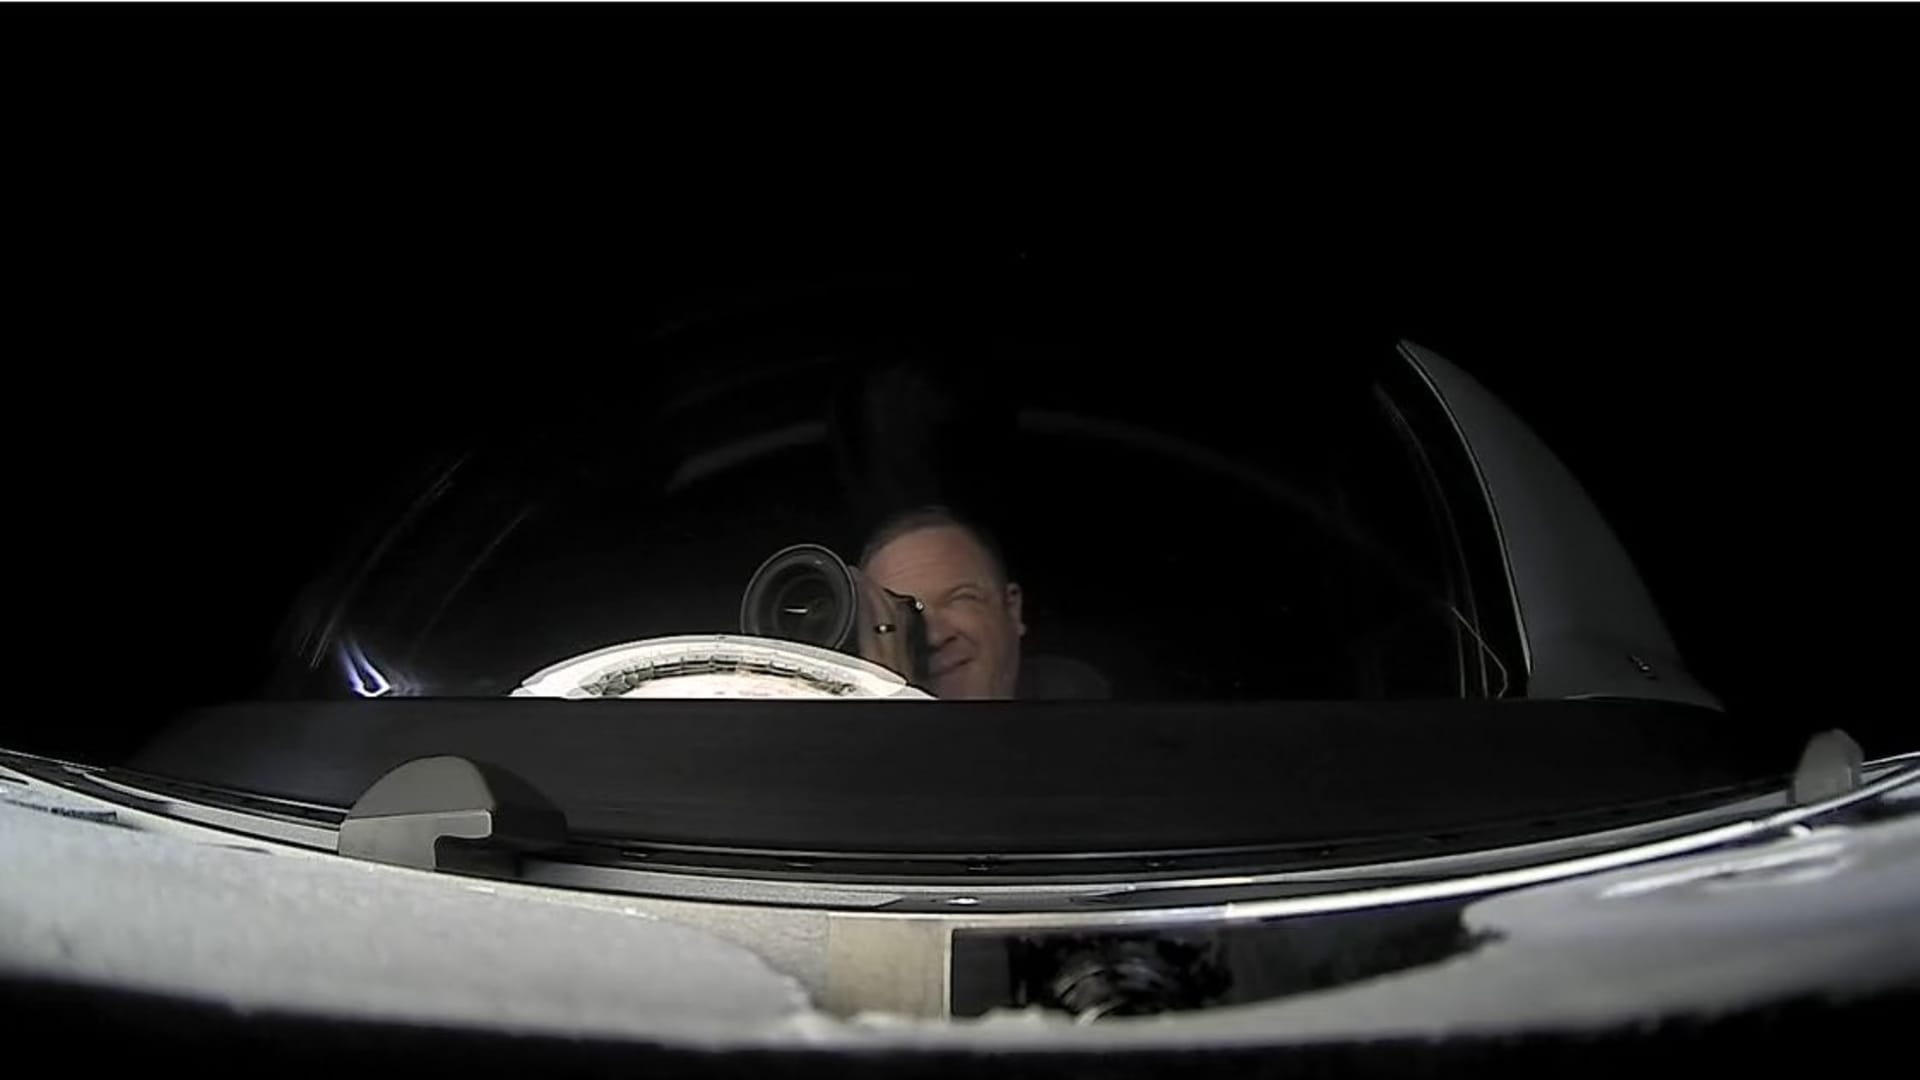 Mission specialist Chris Sembroski is seen taking a photo through the cupola, from an exterior camera on Crew Dragon.